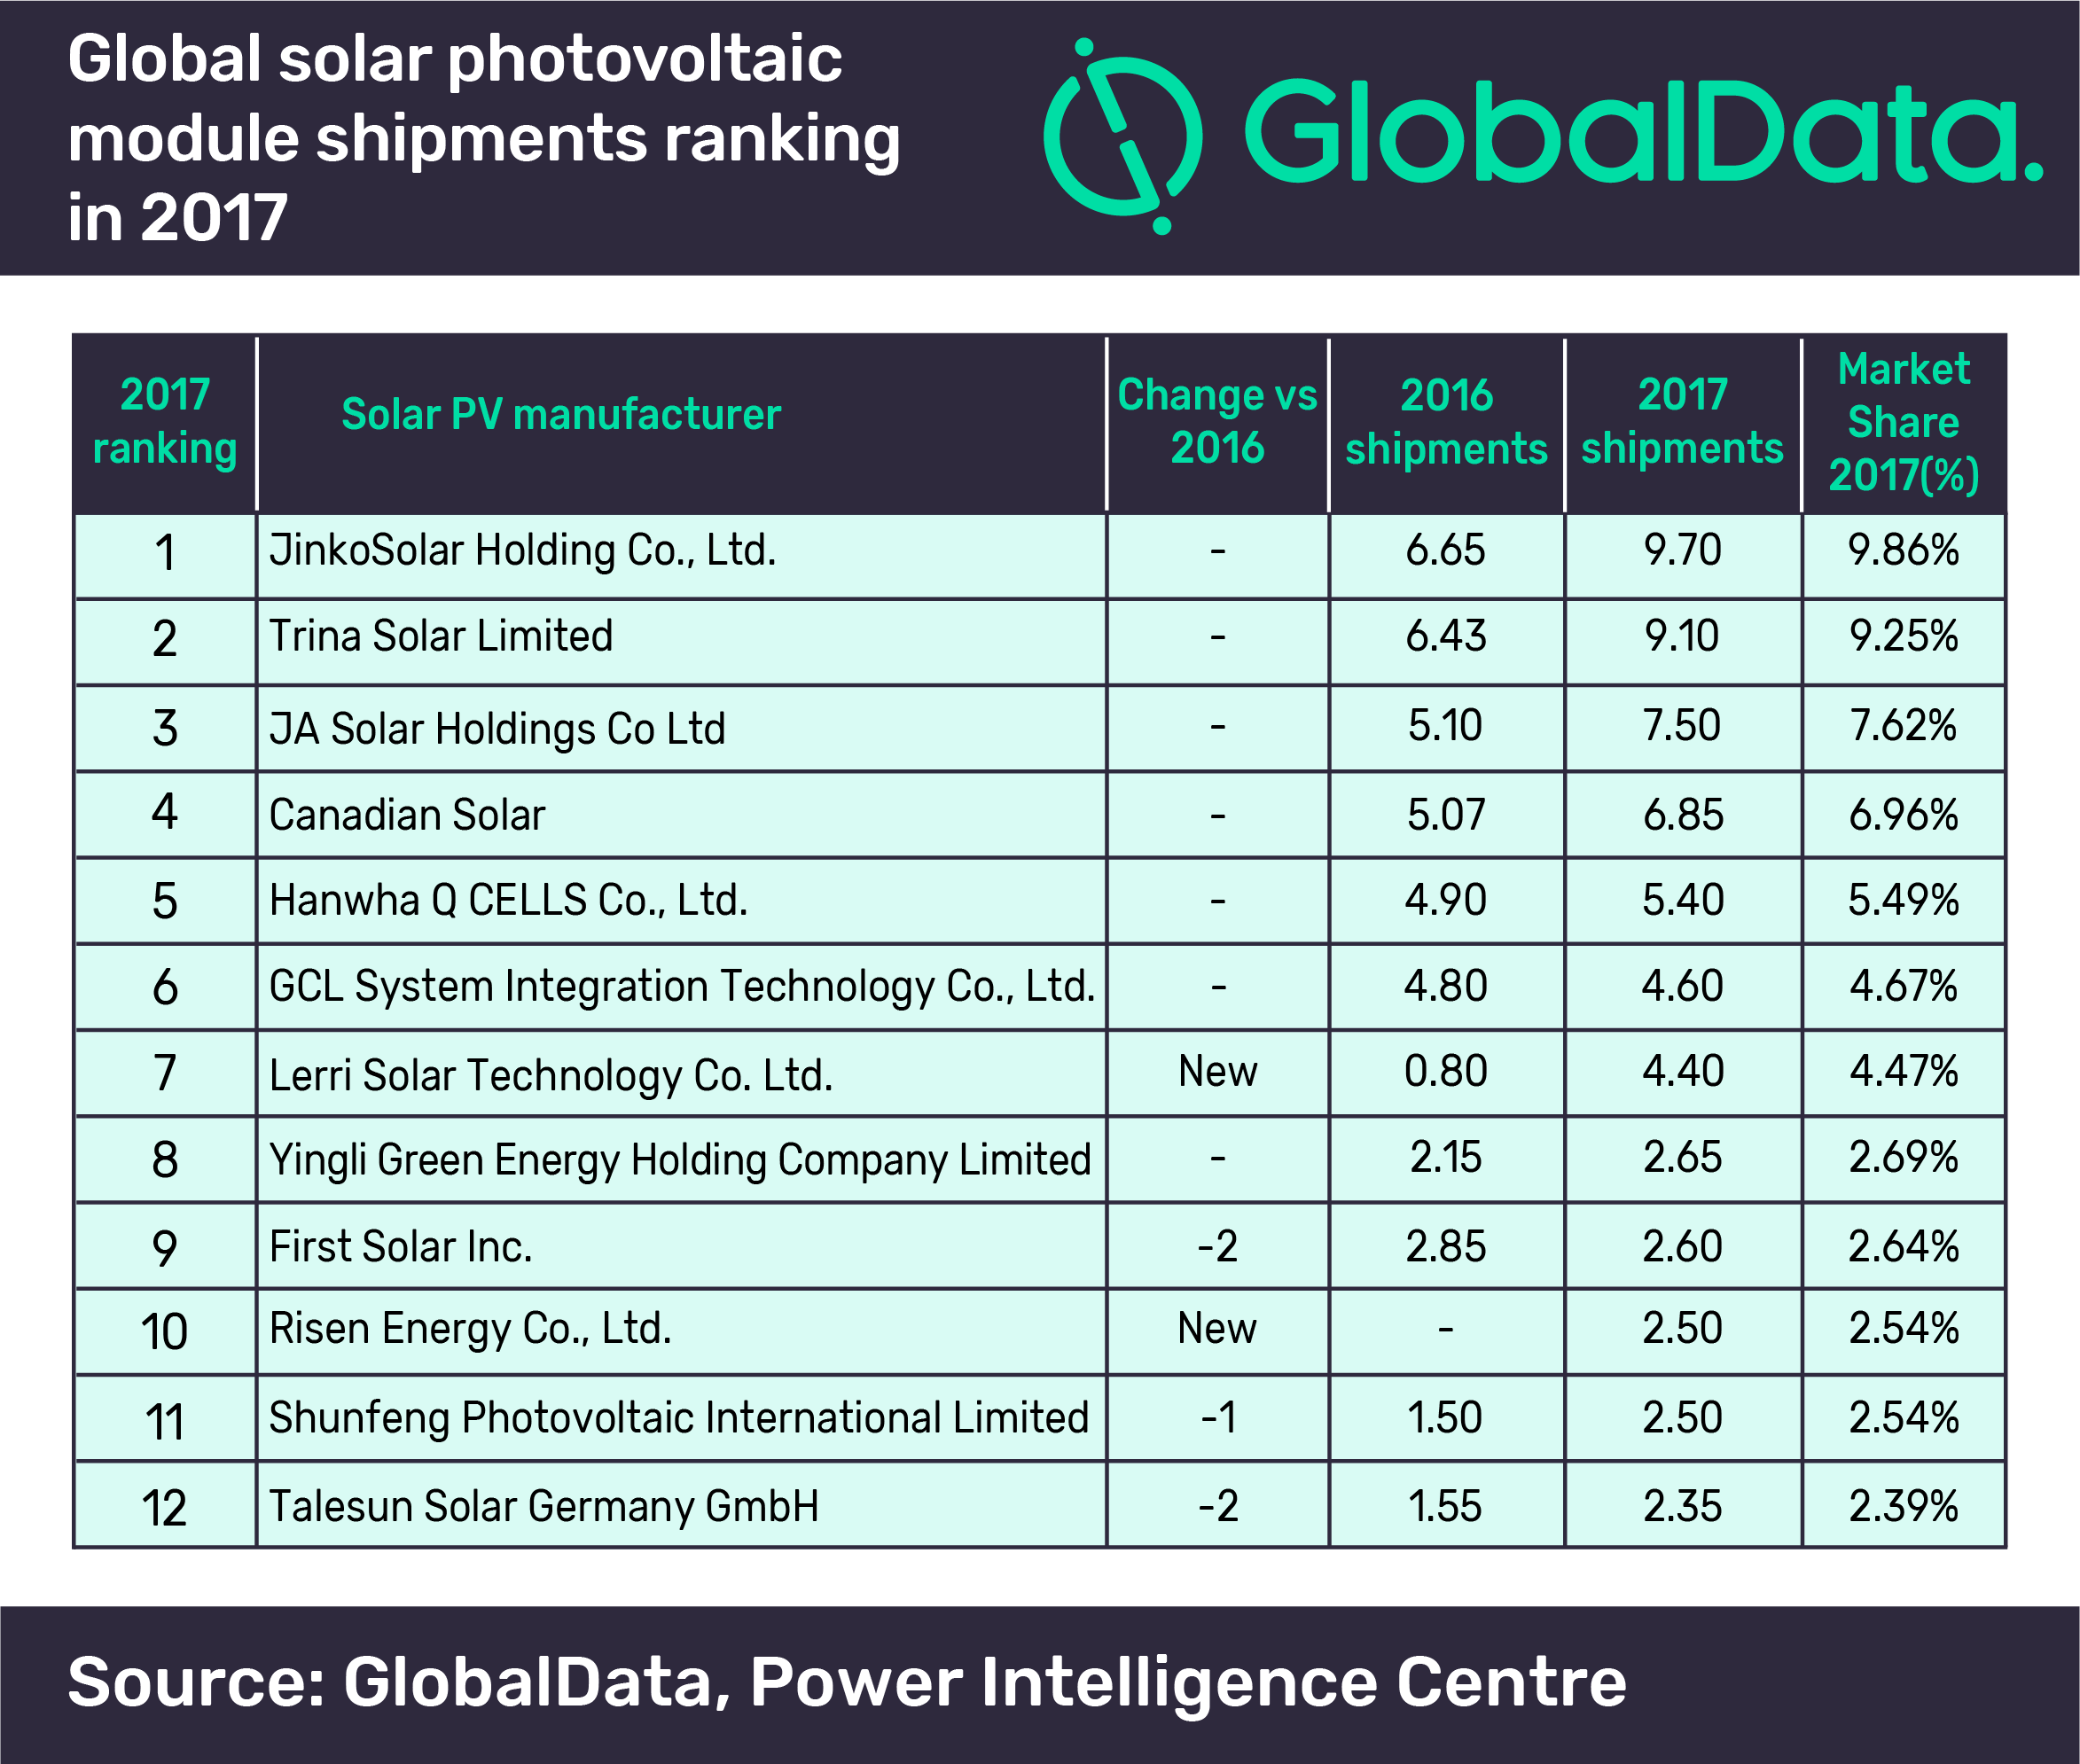 Global Data jinkosolar